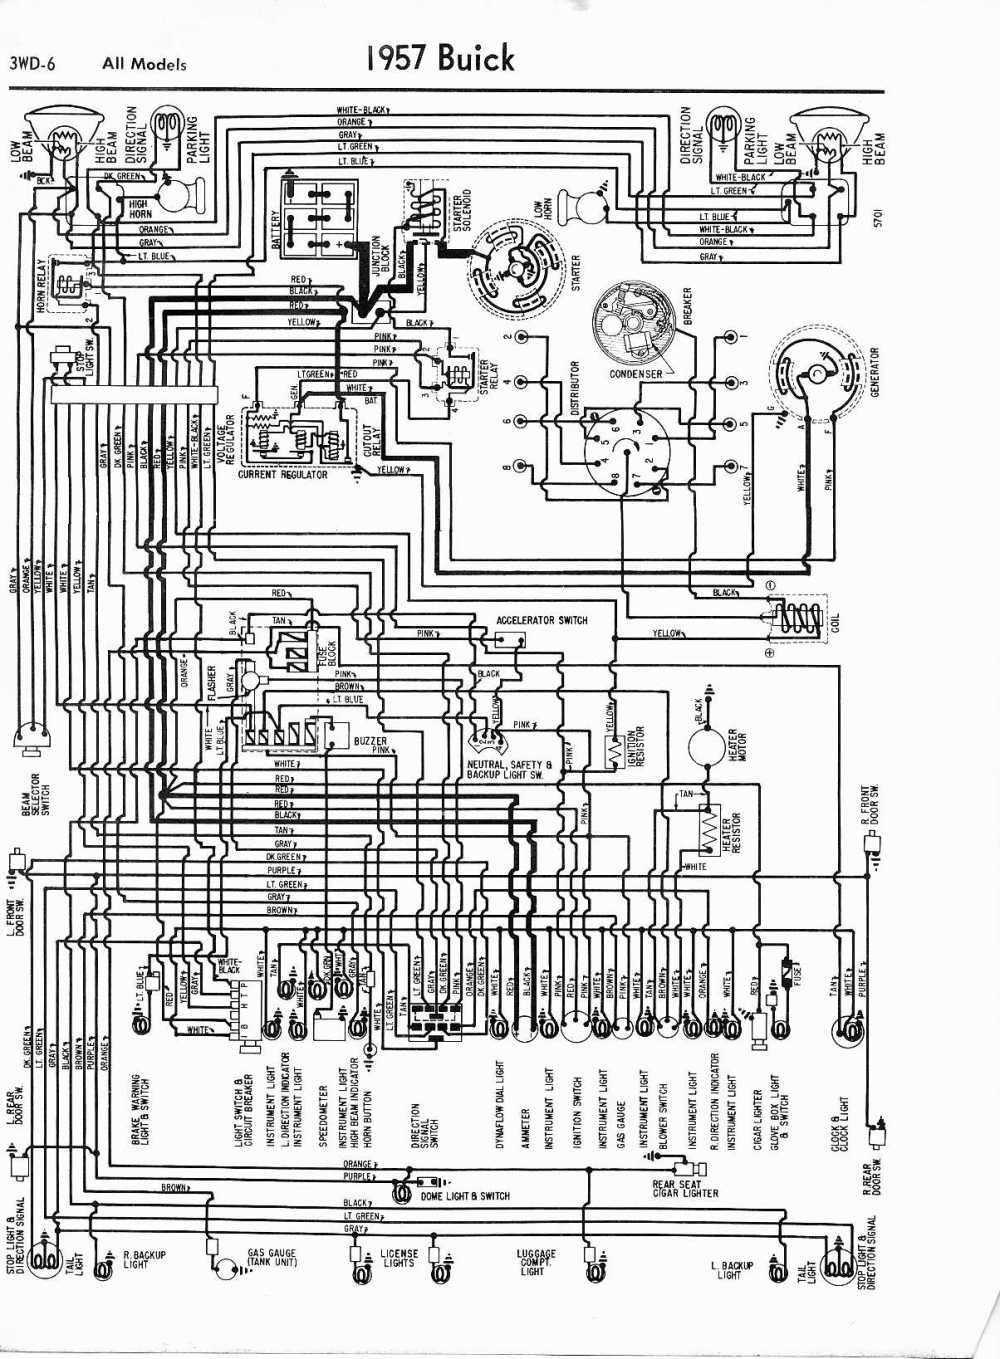 medium resolution of 1966 buick riviera wiring diagram simple wiring diagram 1967 ford wiring diagram 1964 riviera wiring diagram